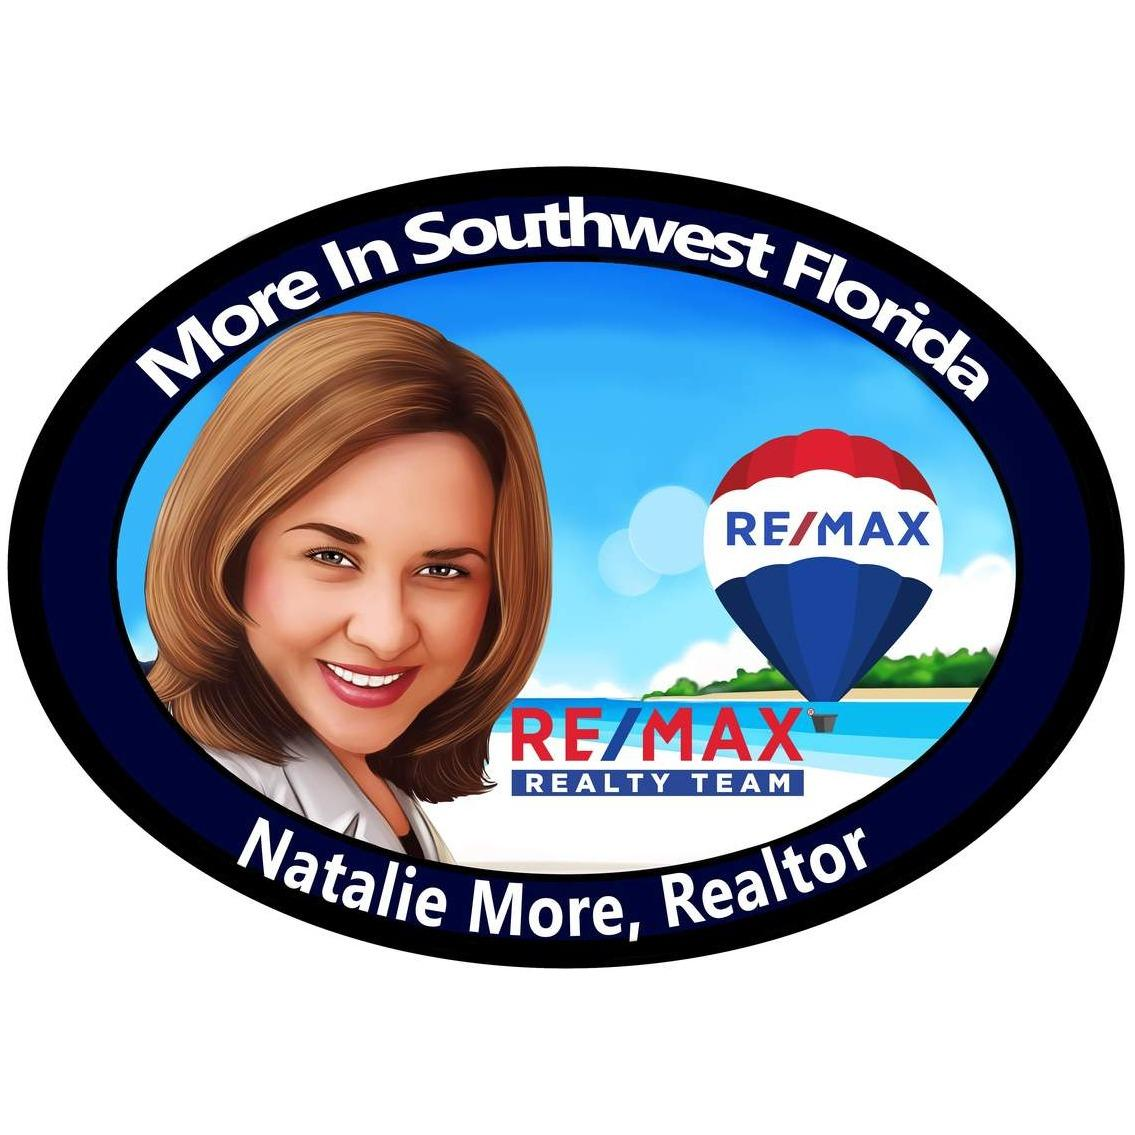 Natalie More - RE/MAX Realty Team image 1